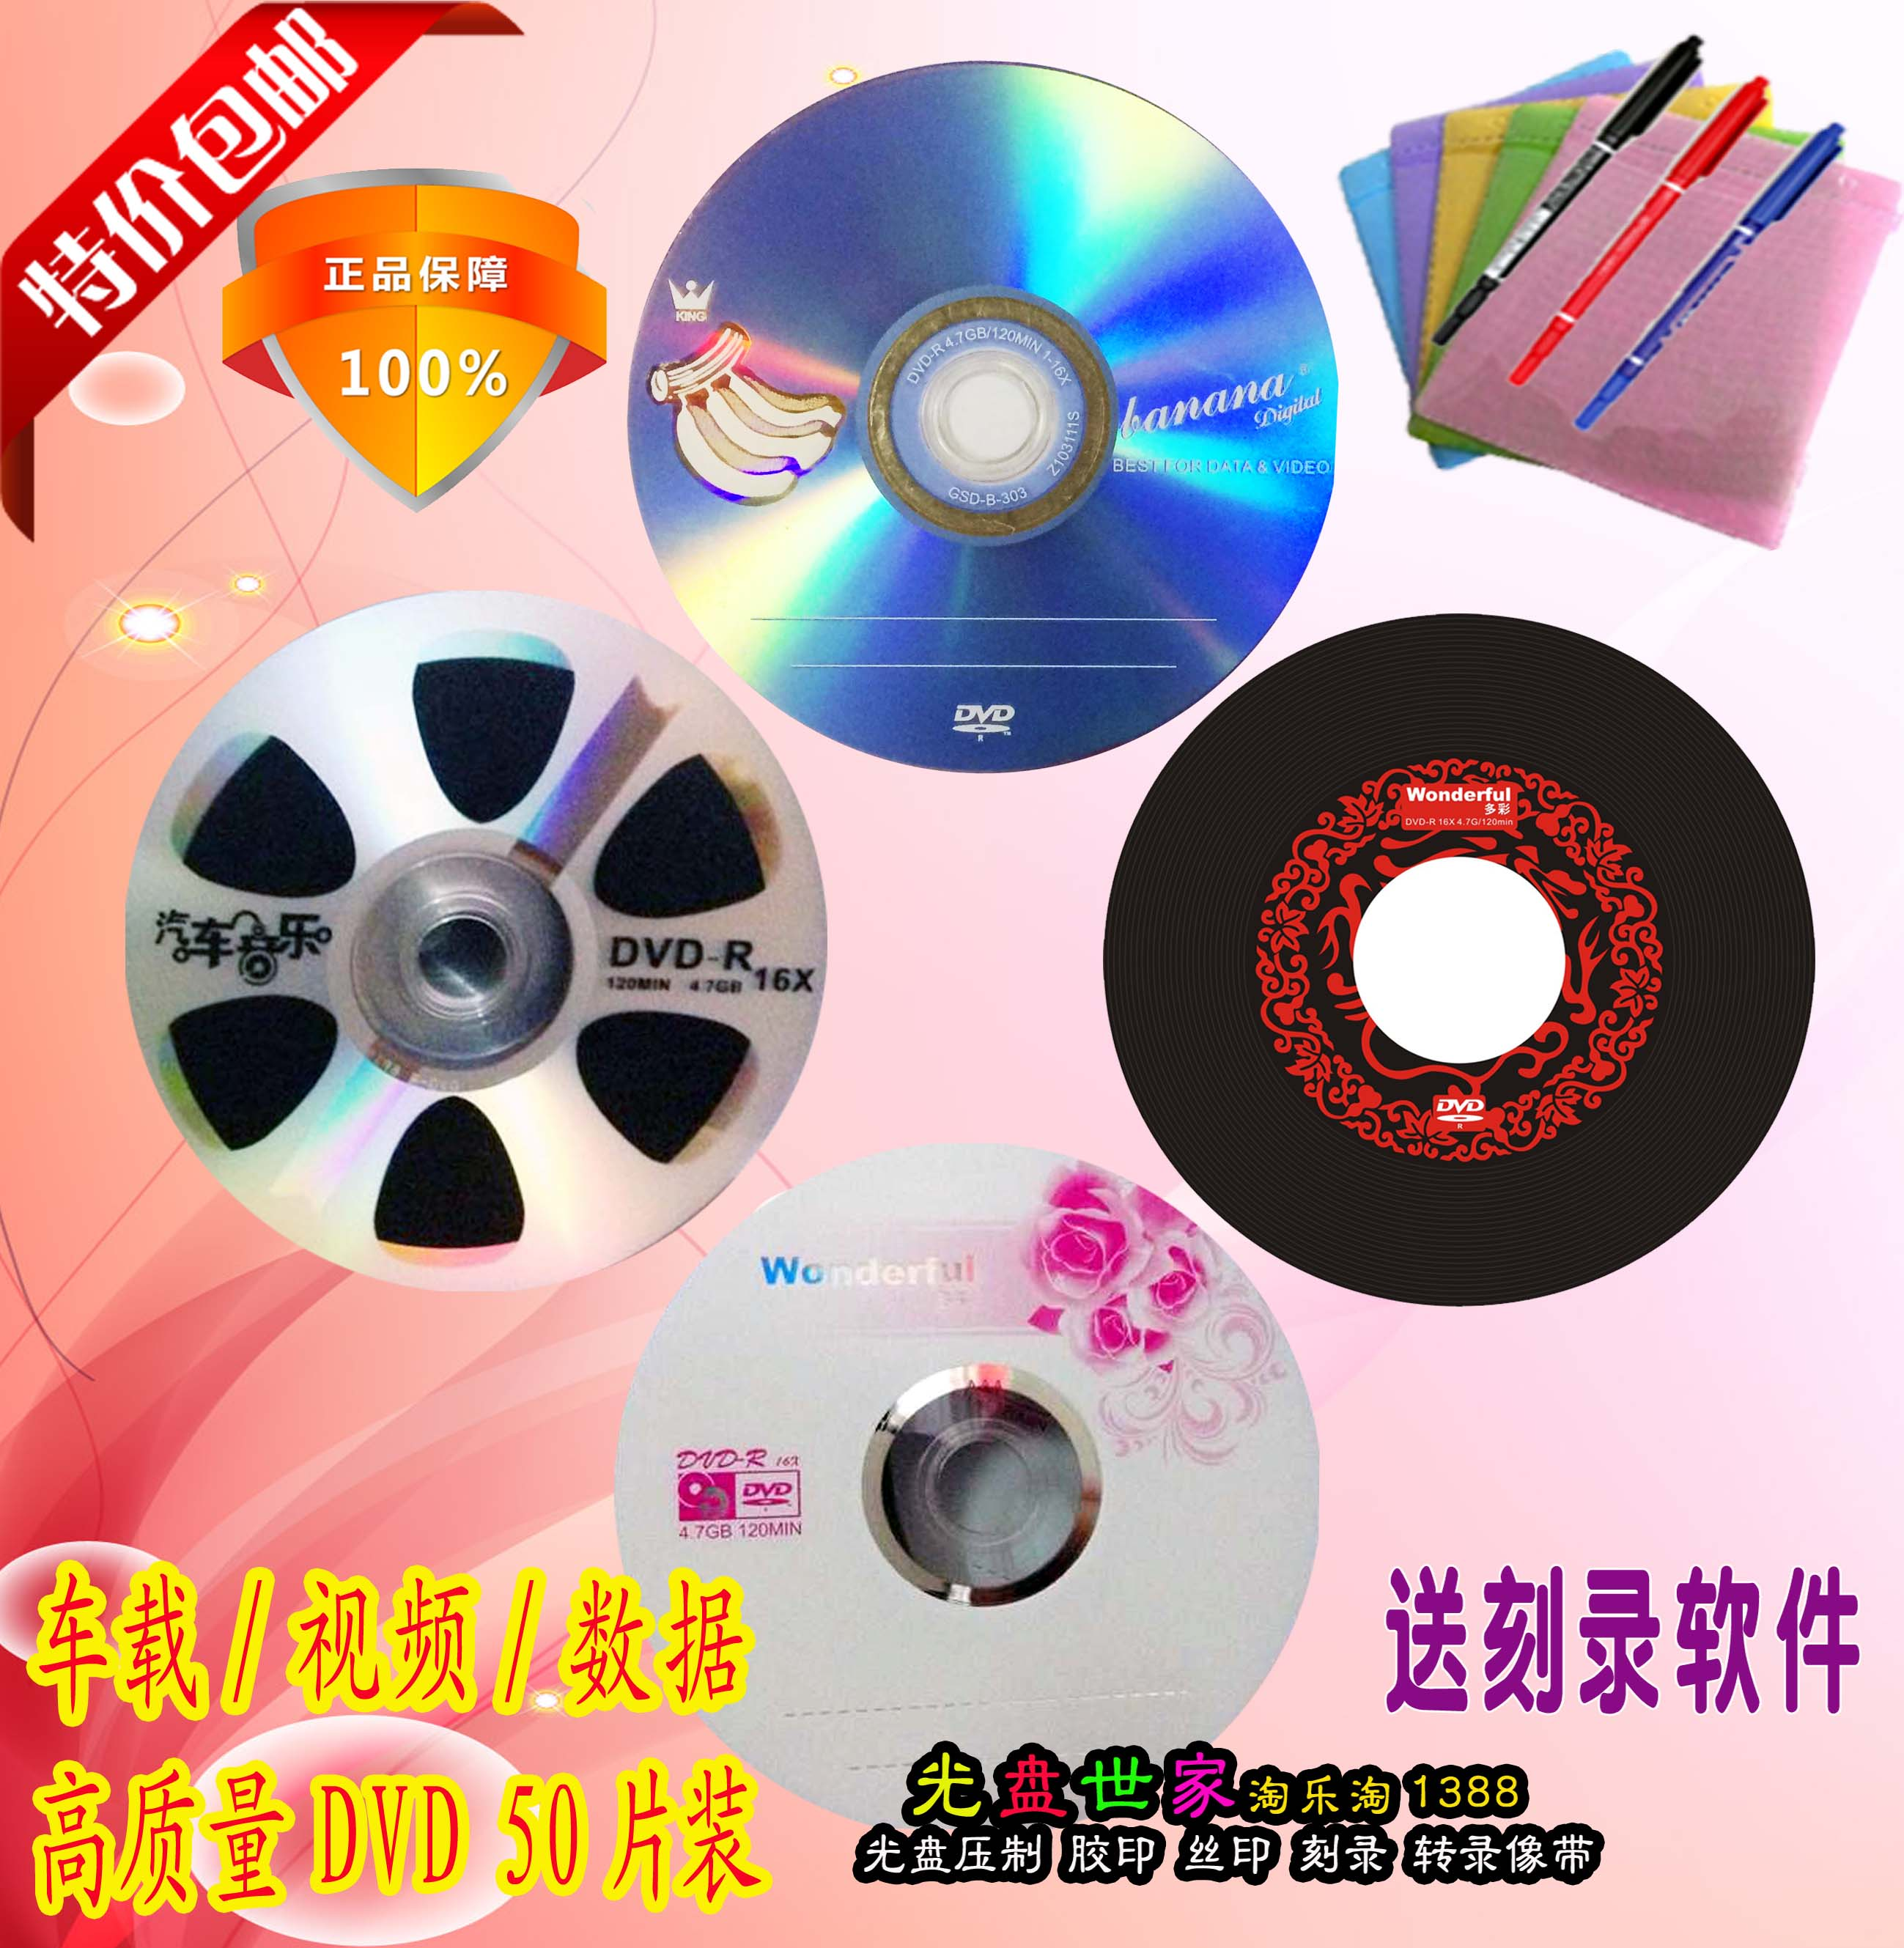 Packages mailed DVD burn DVD disc banana 50 tablets by CD DVD burn blank CD - R discs